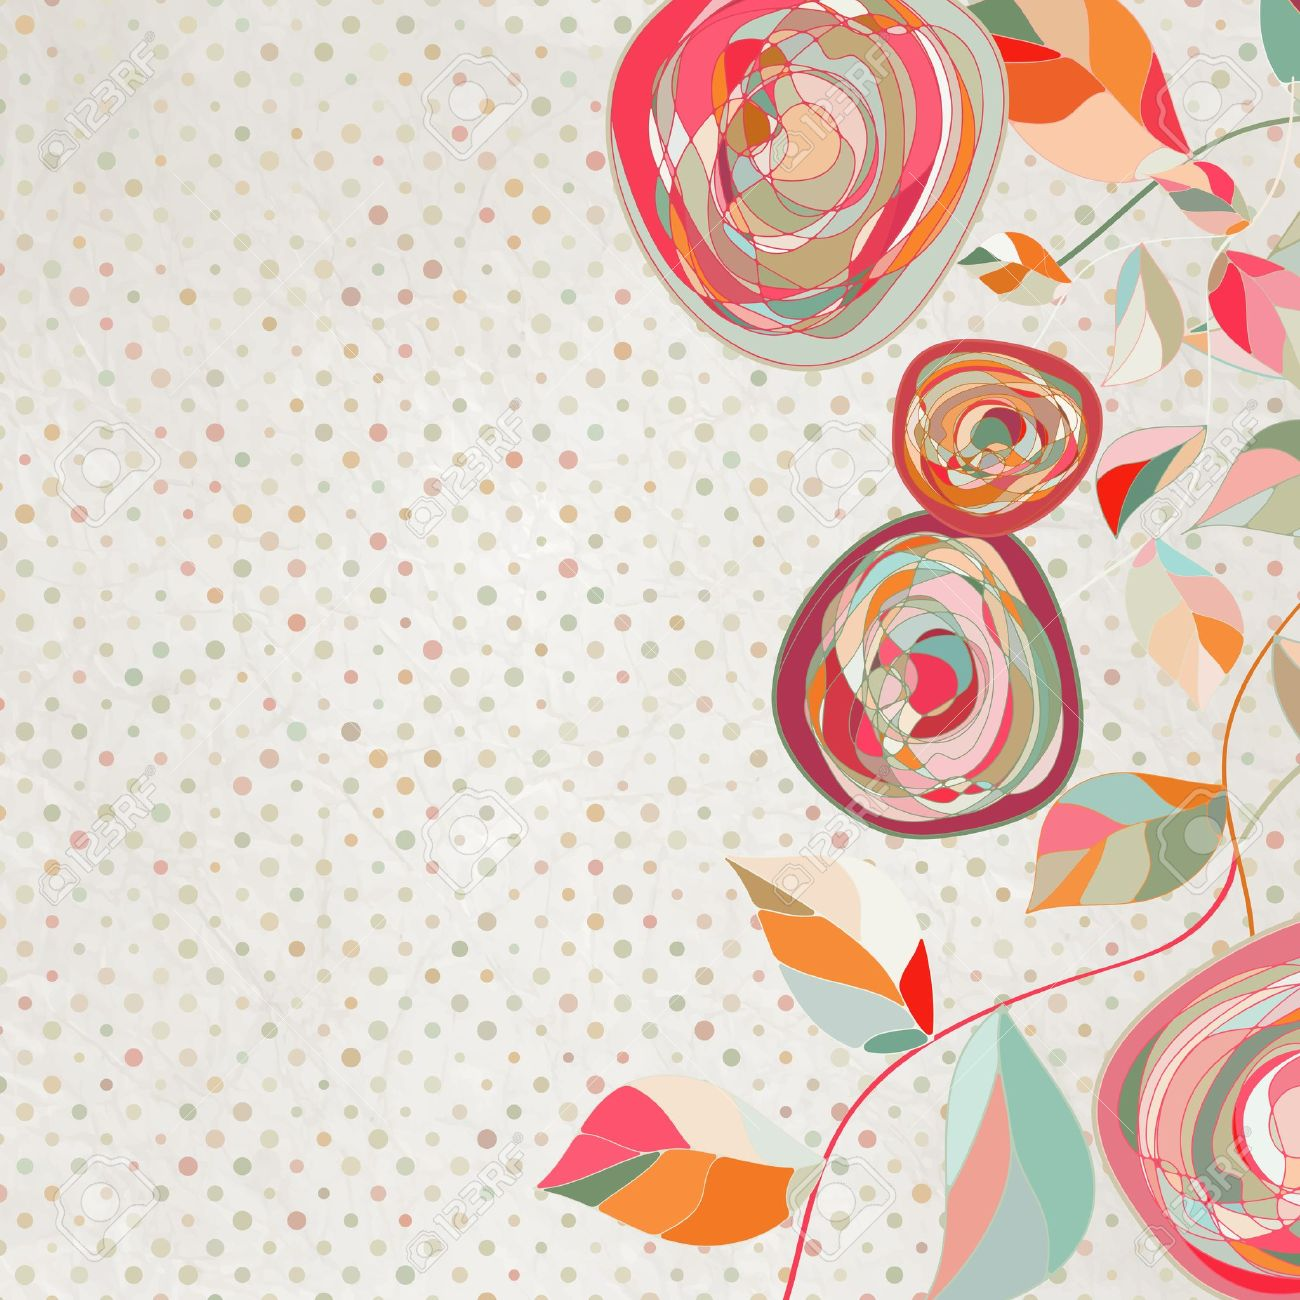 intage Flower Template, Floral Background EPS 8 Royalty Free ...